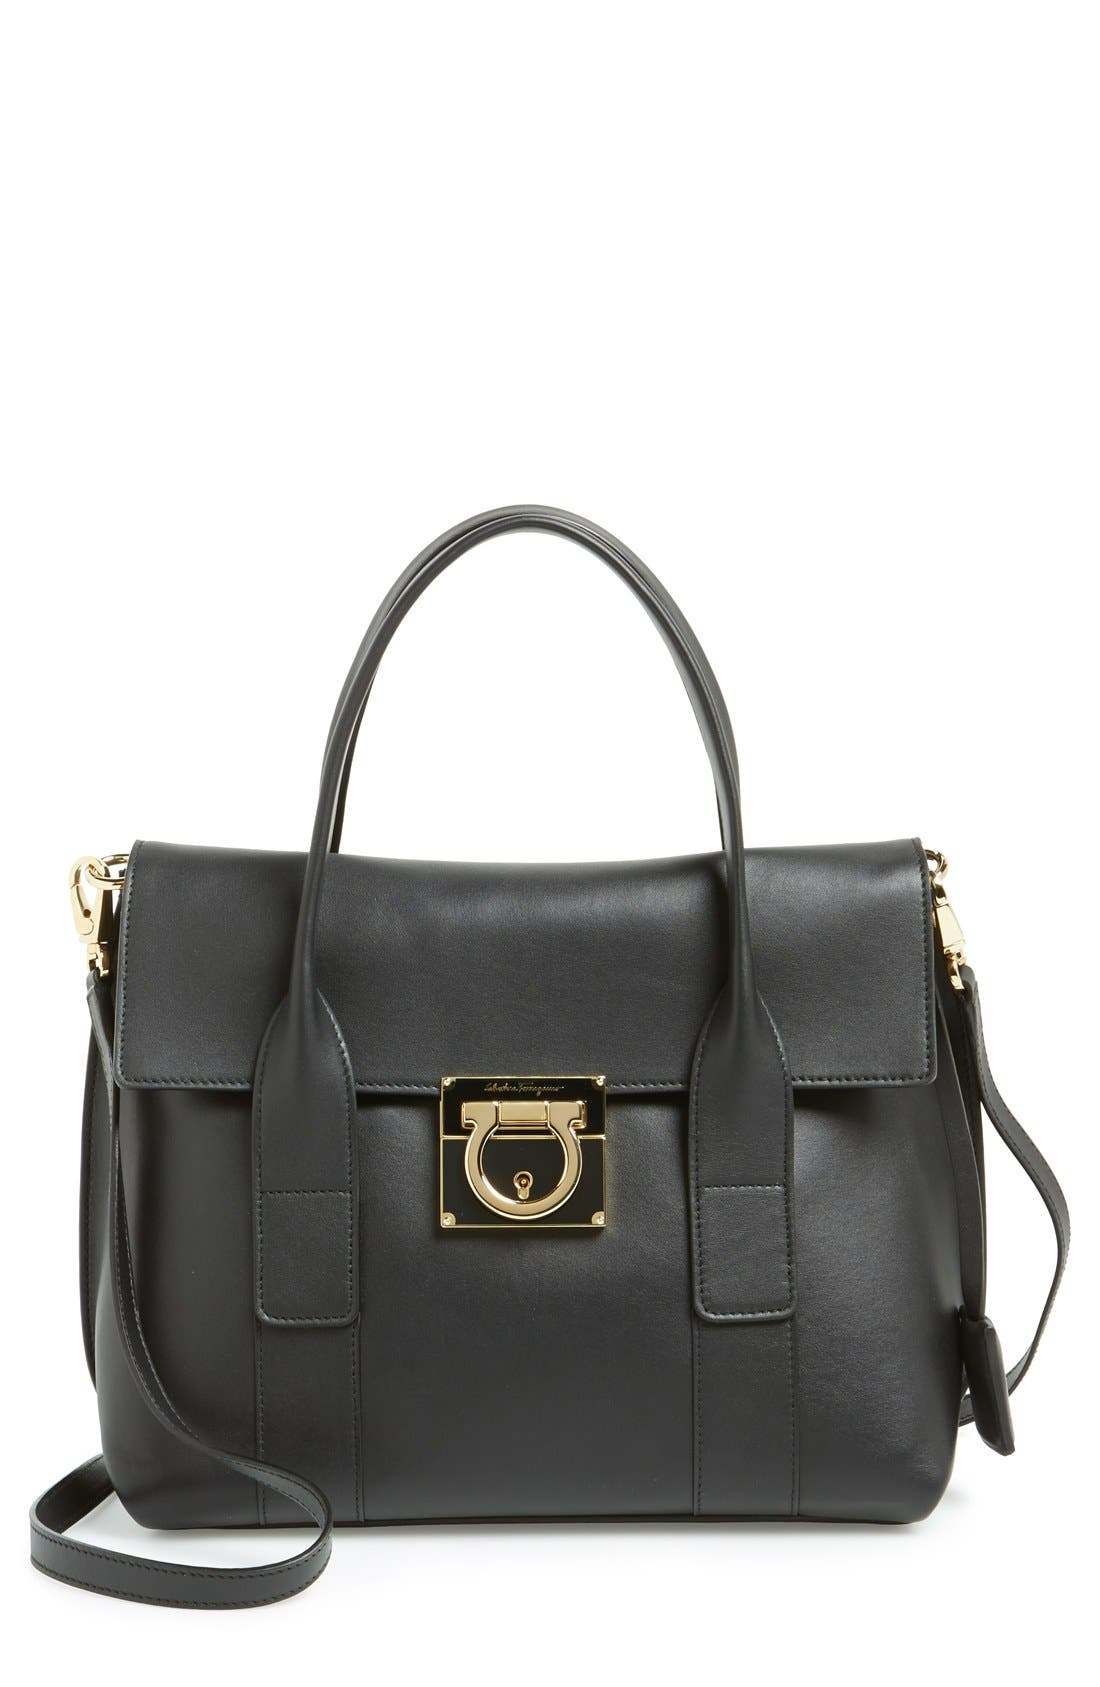 Main Image - Salvatore Ferragamo 'Mini Sookie' Leather Satchel